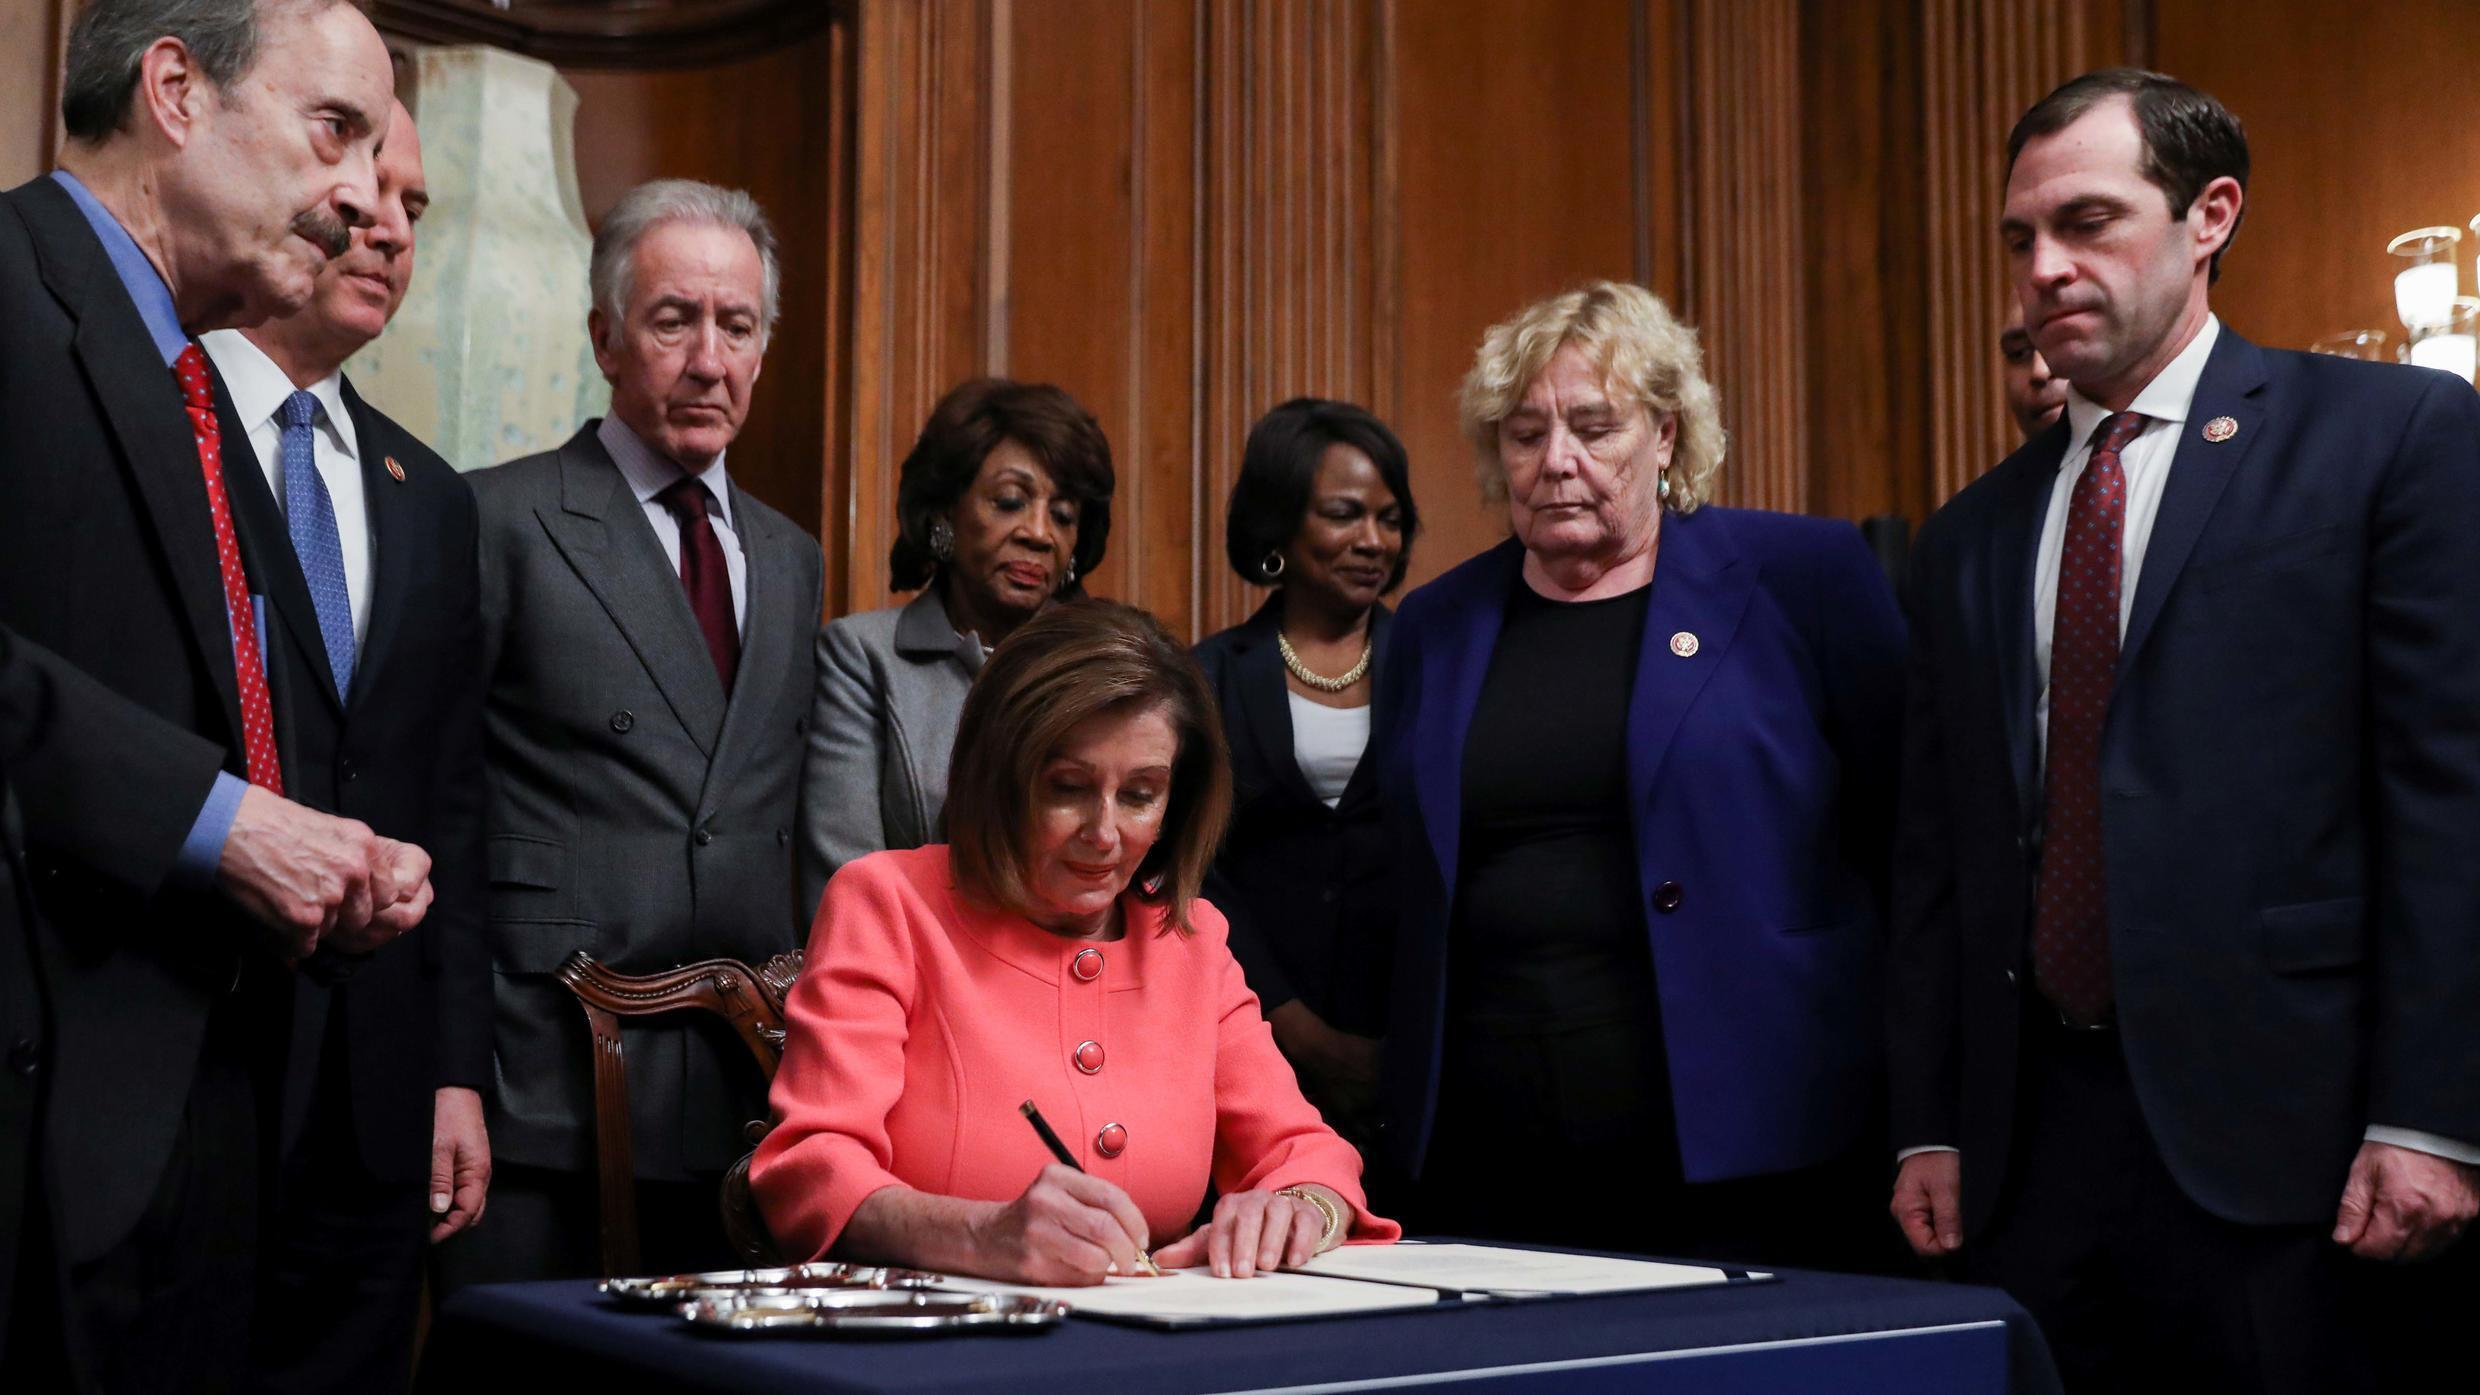 U.S. House Speaker Nancy Pelosi (D-CA) is surrounded by the House impeachment managers and committee chairs as she signs the two articles of impeachment of U.S. President Donald Trump before sending them over to the U.S. Senate during an engrossment ceremony at the U.S. Capitol in Washington, U.S., January 15, 2020.